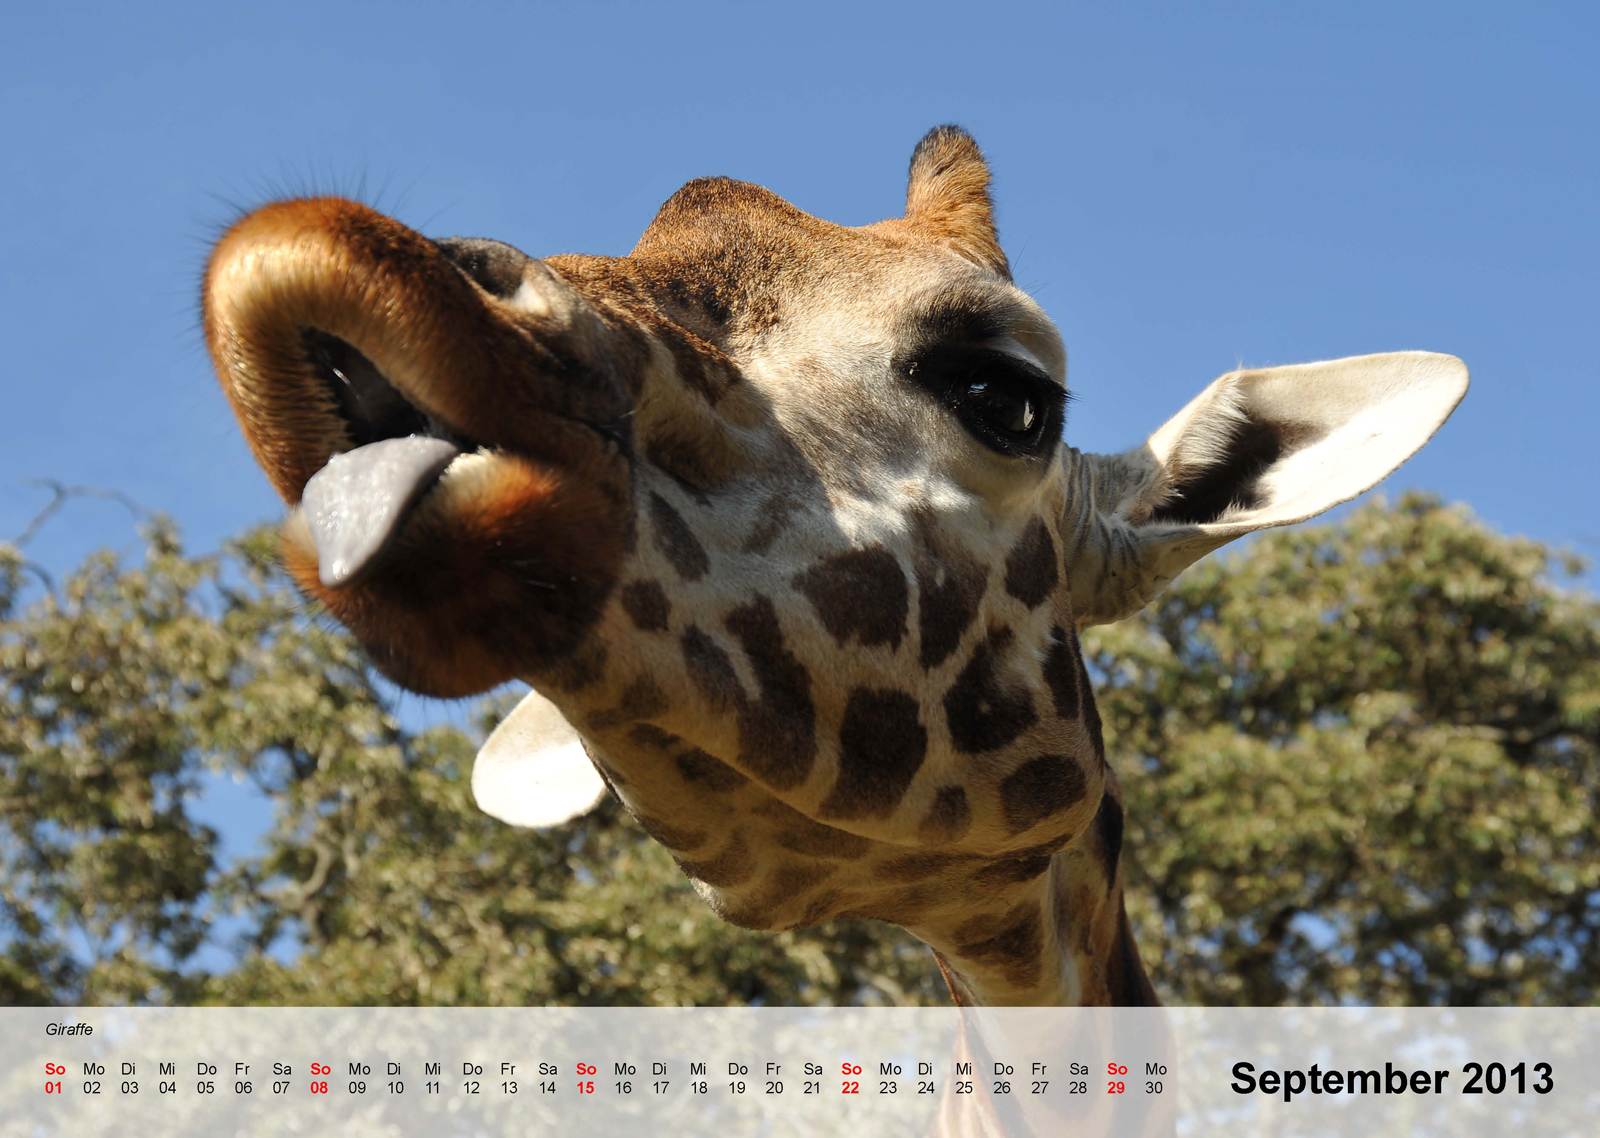 Giraffe - Kalender 2013 - September